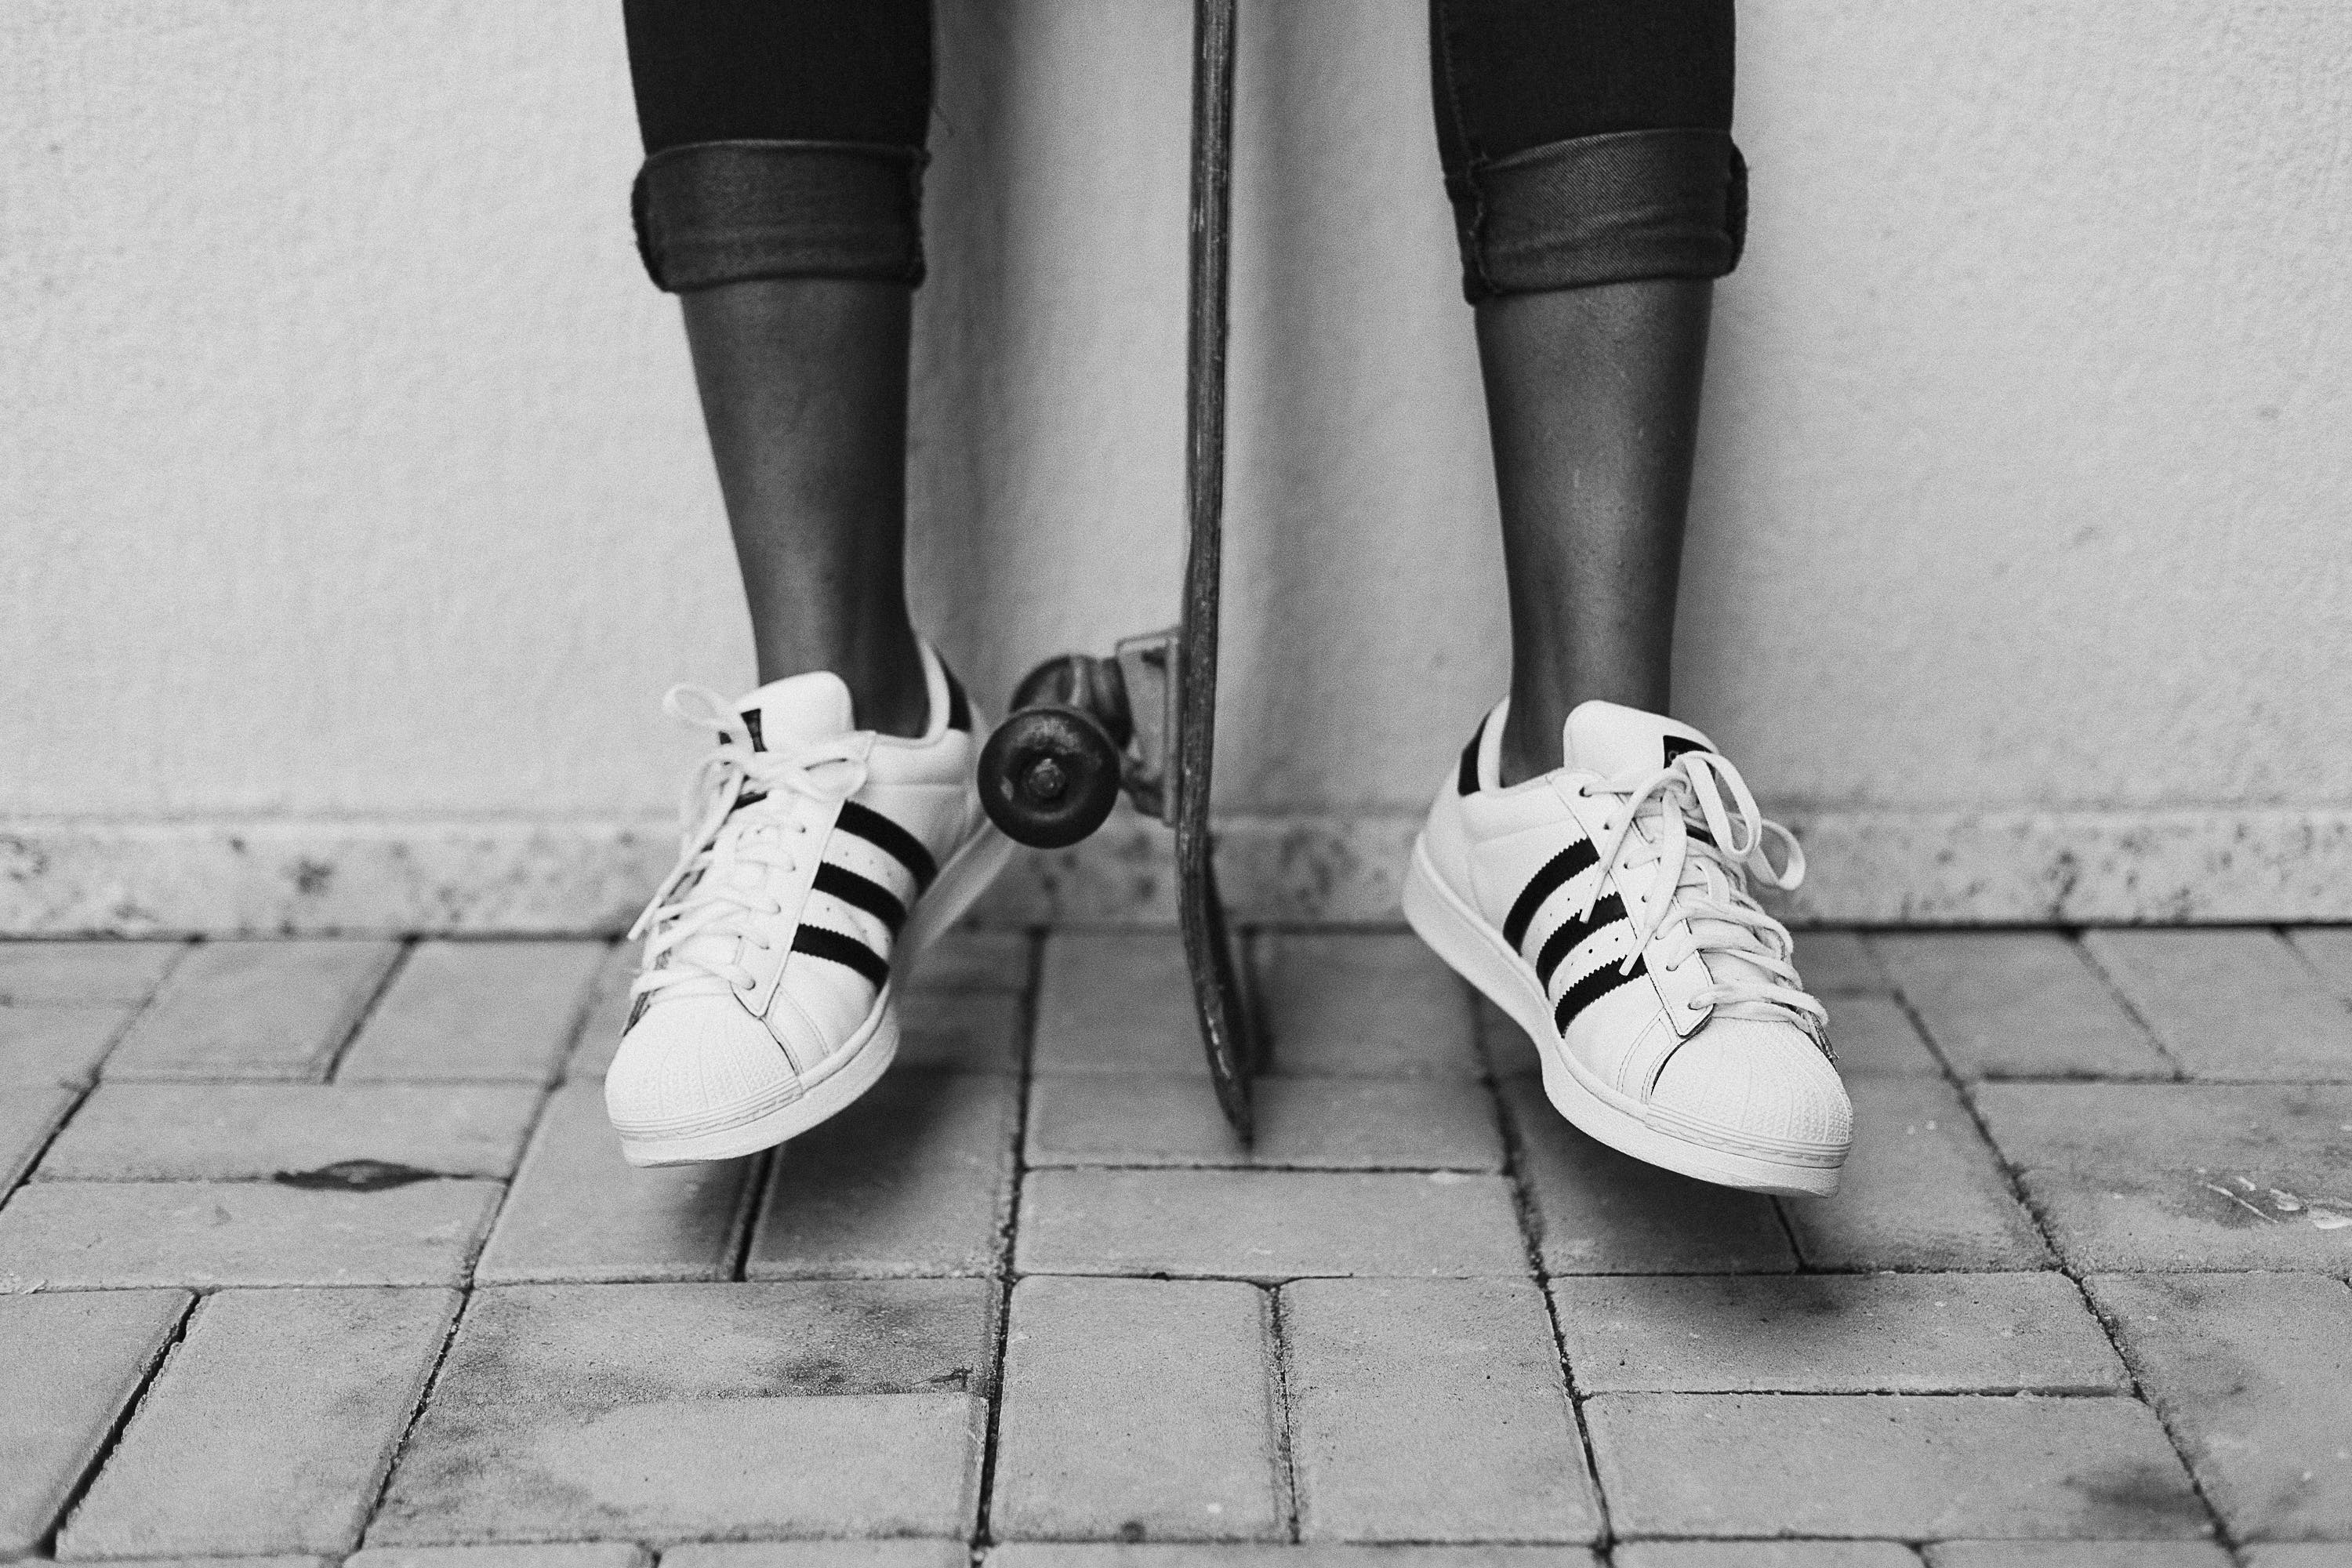 Grayscale Photo Of Shoes And Skateboard